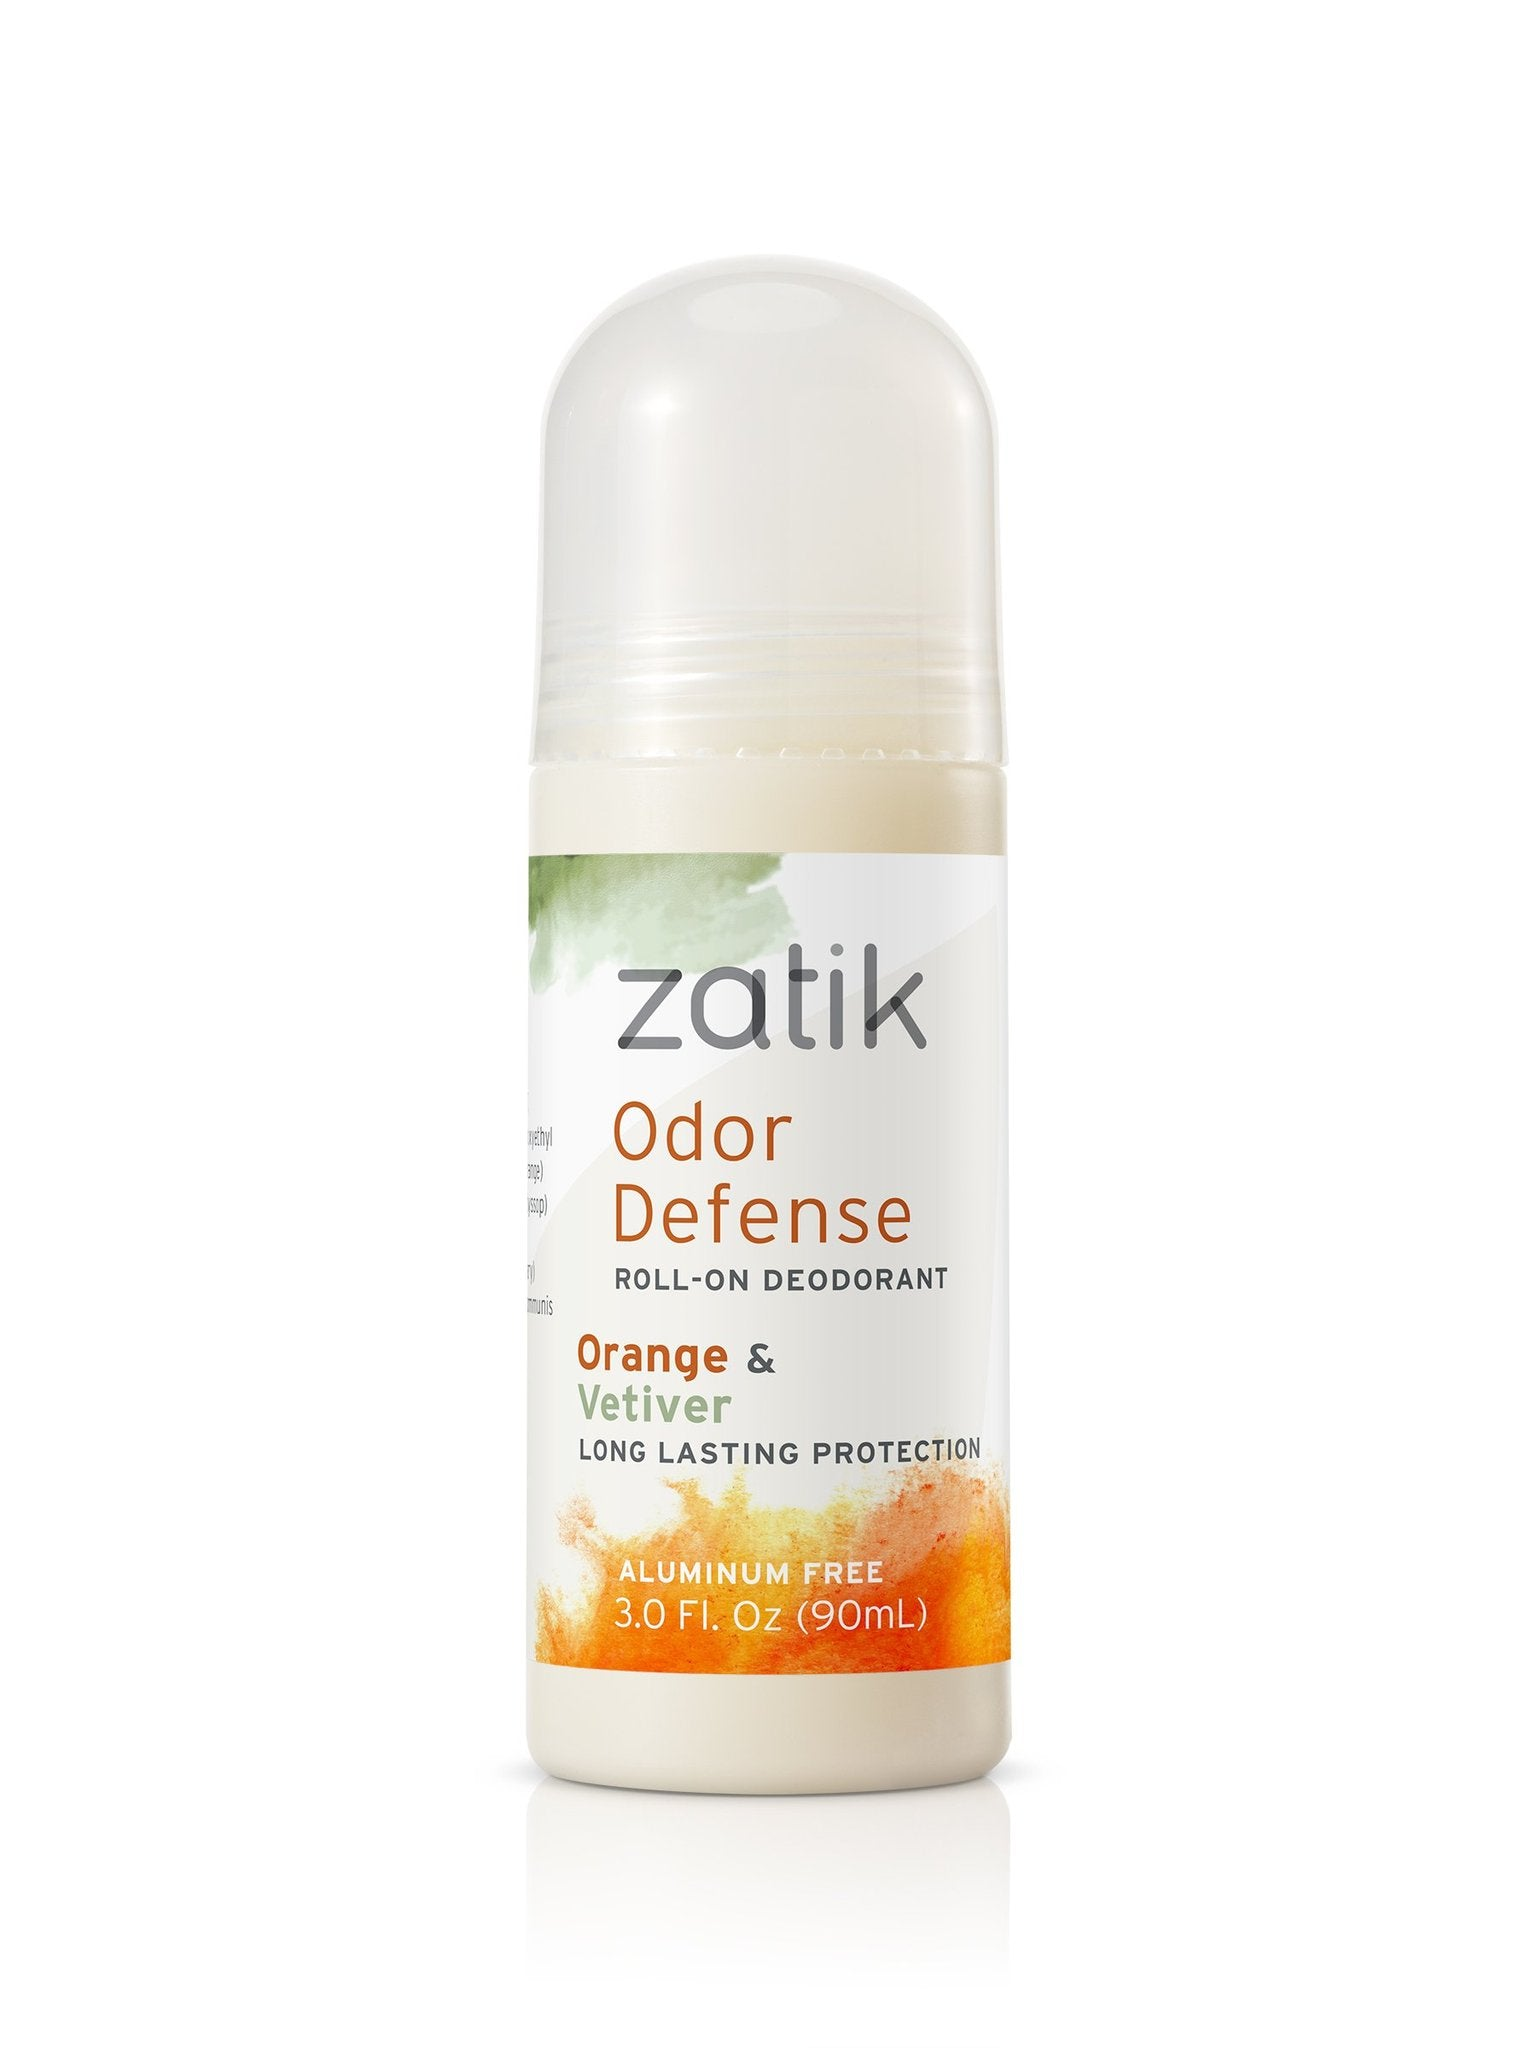 Odor Defense Roll on Deodorant - Orange & Vetiver